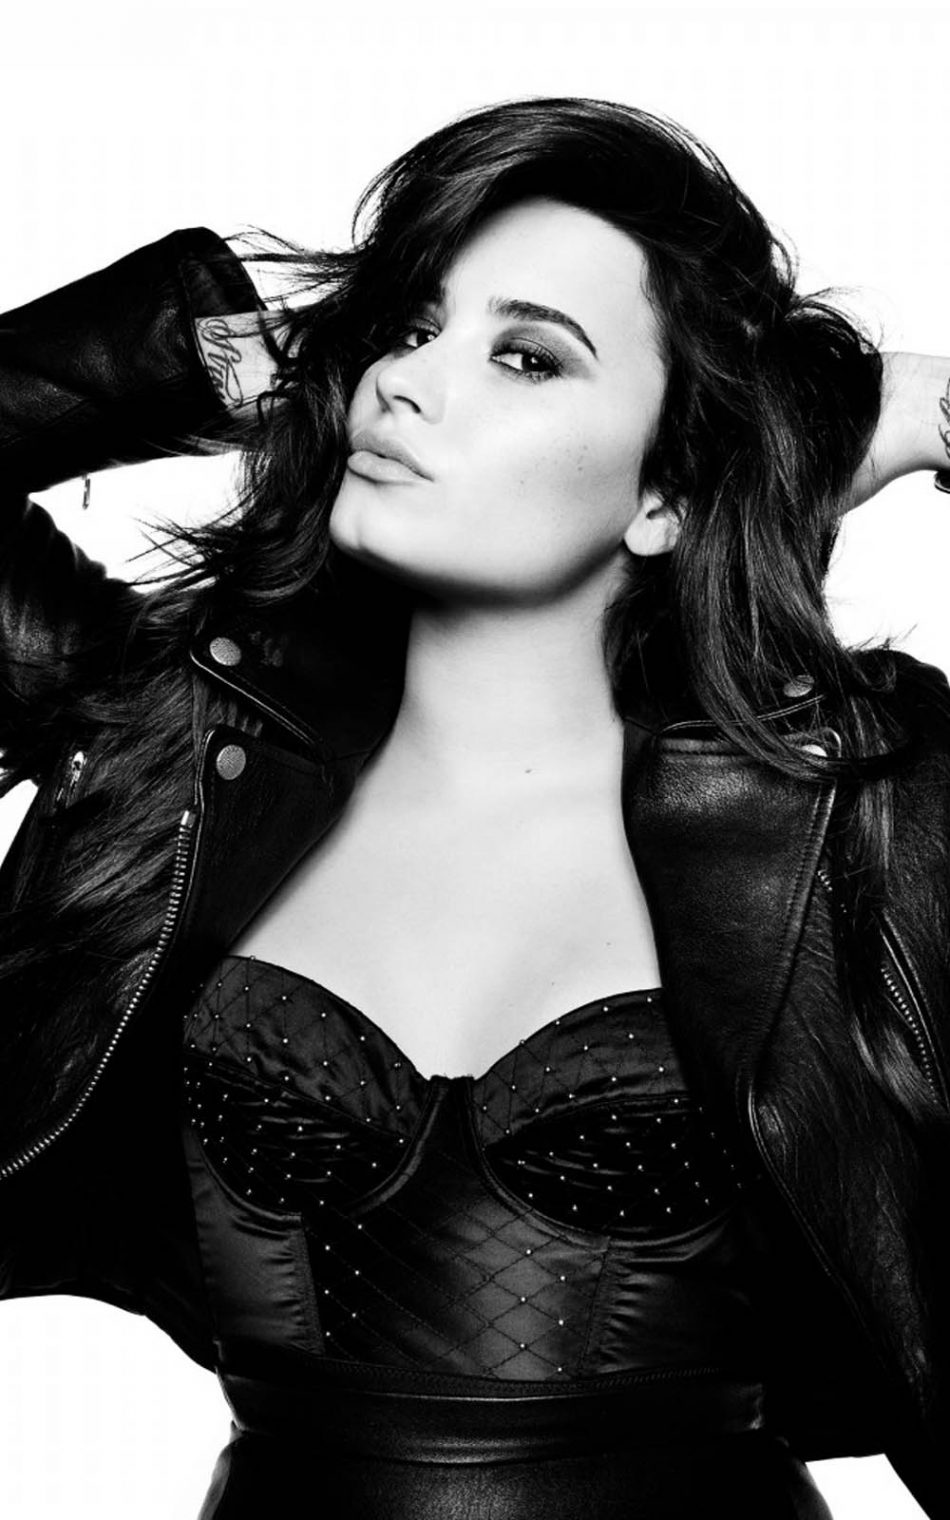 Demi Lovato Without The Love HD Mobile Wallpaper